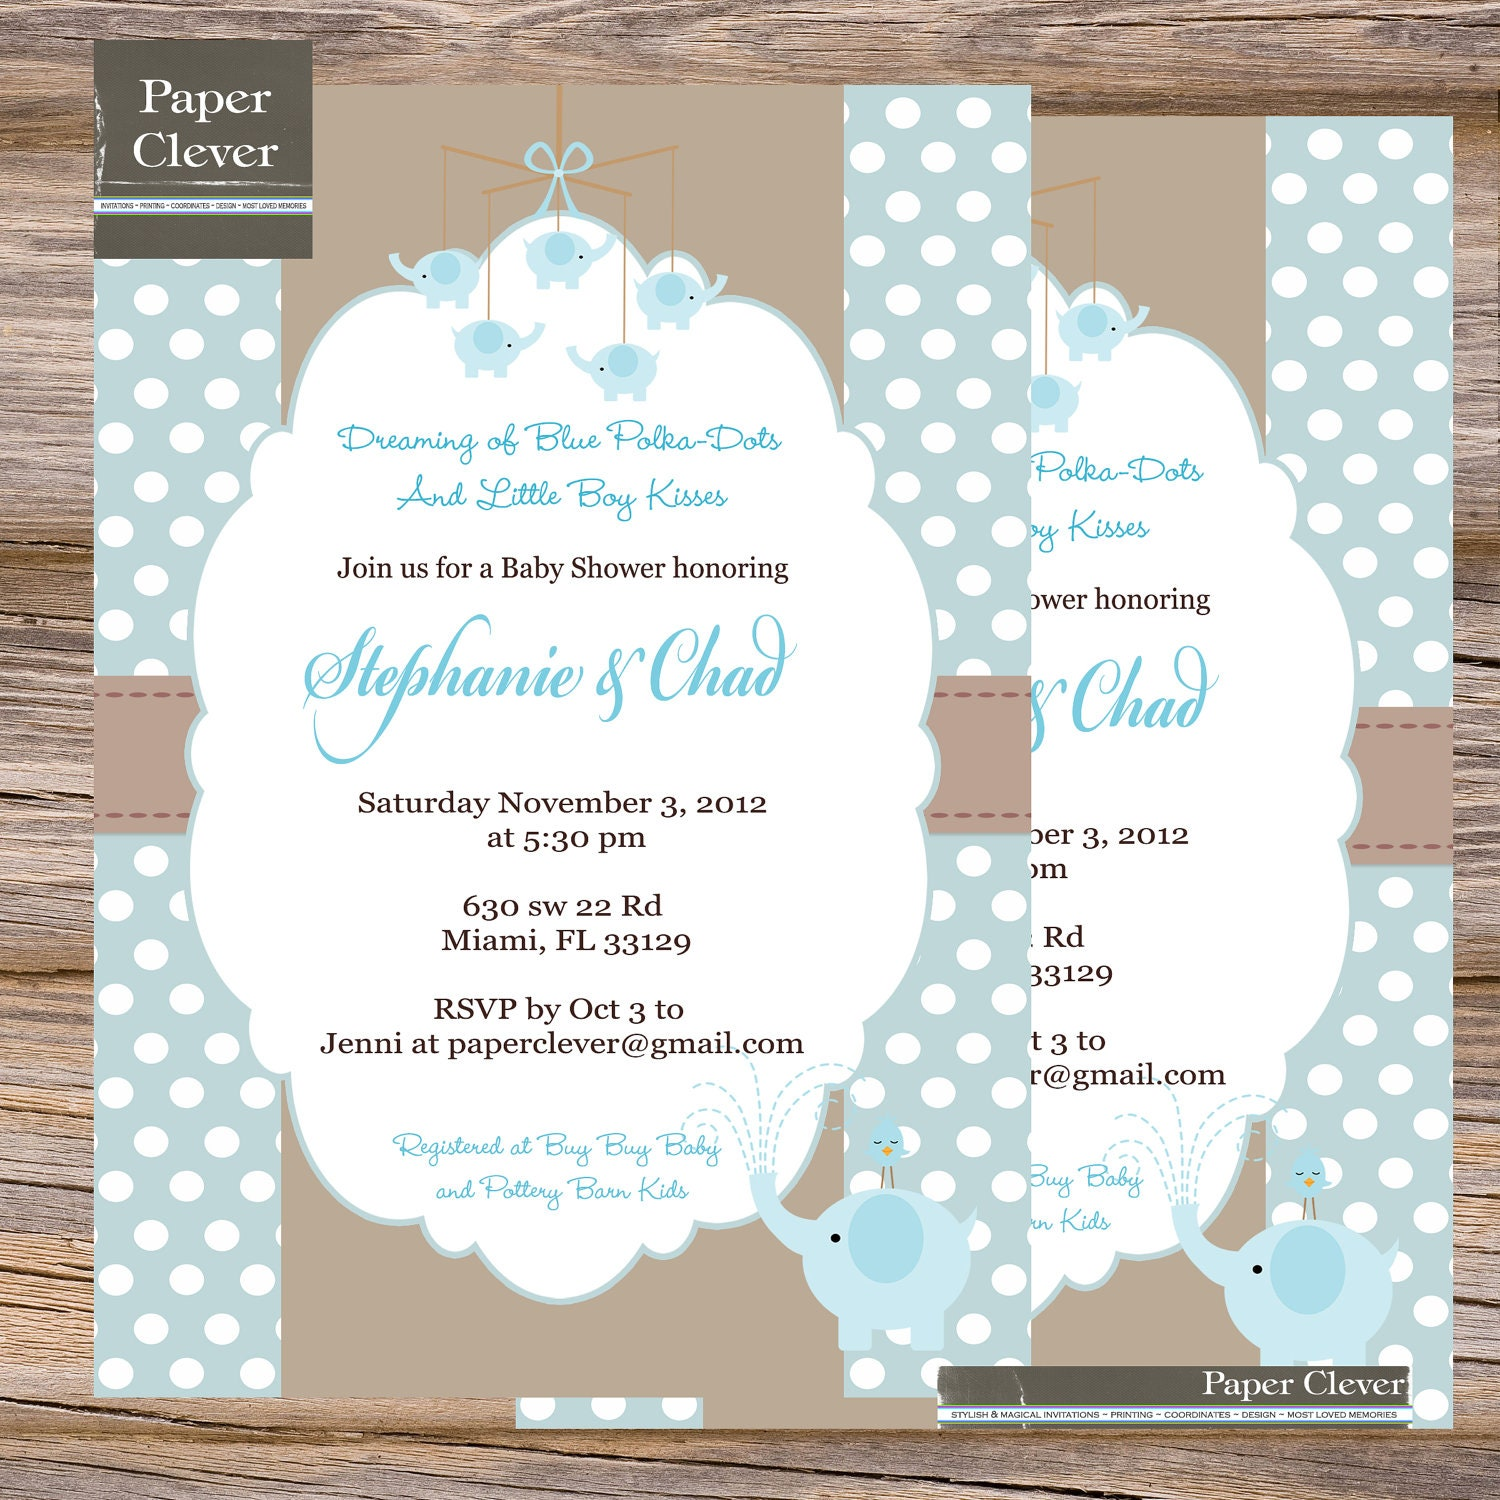 Baby Shower Invitations Wording For Boys: Boys Baby Shower Invitation Blue & Taupe Elephant By